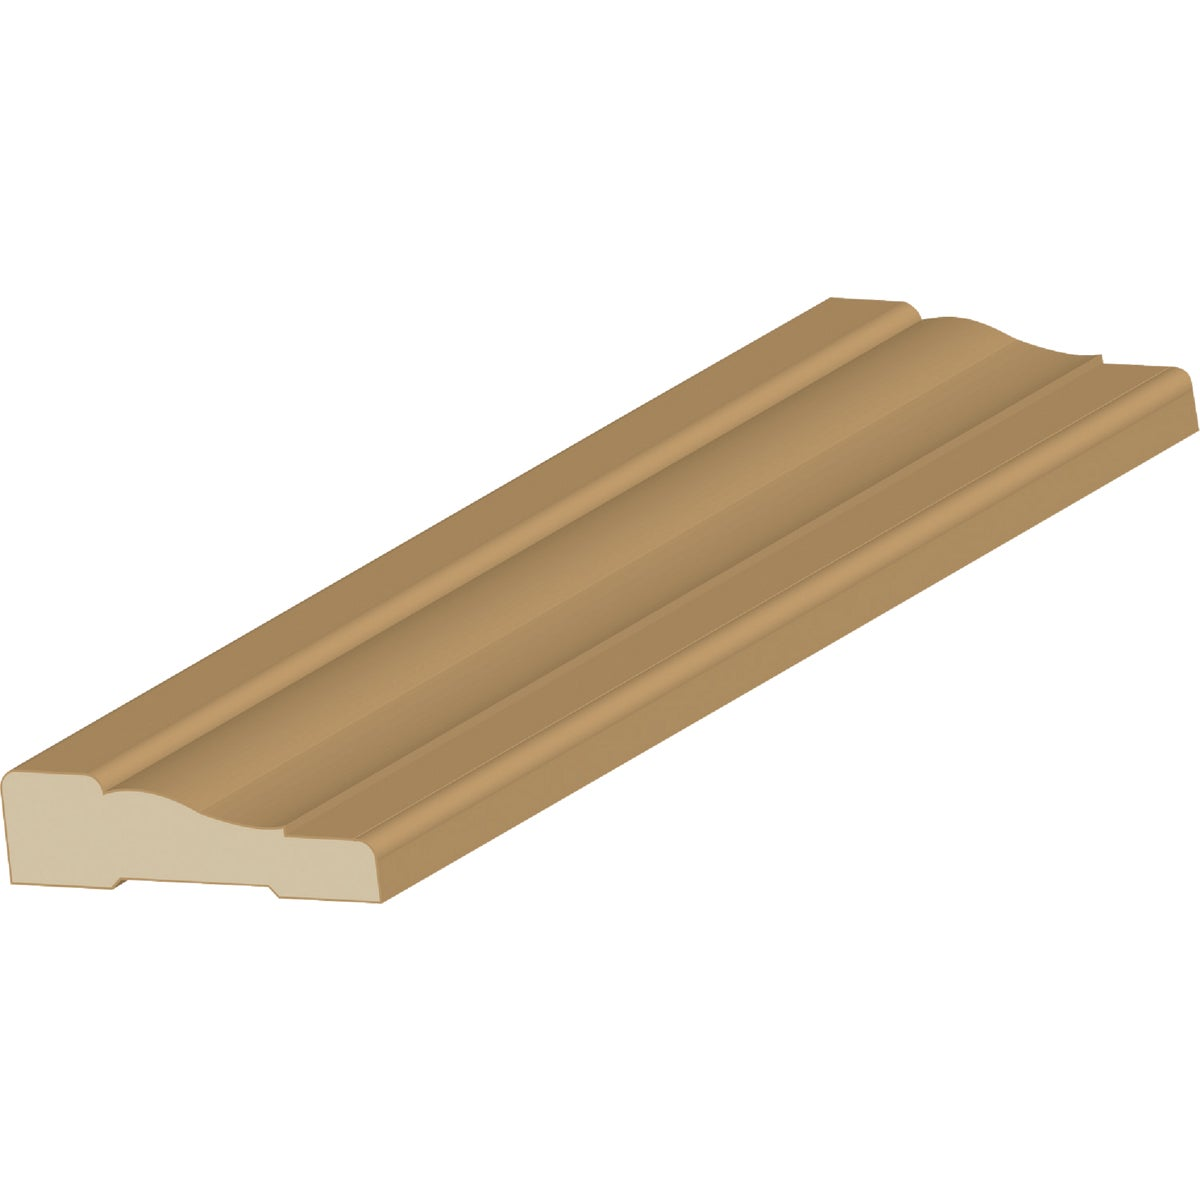 WM356 PFJ 14' CL CASING - 35614FJPC by Jim White Millwork